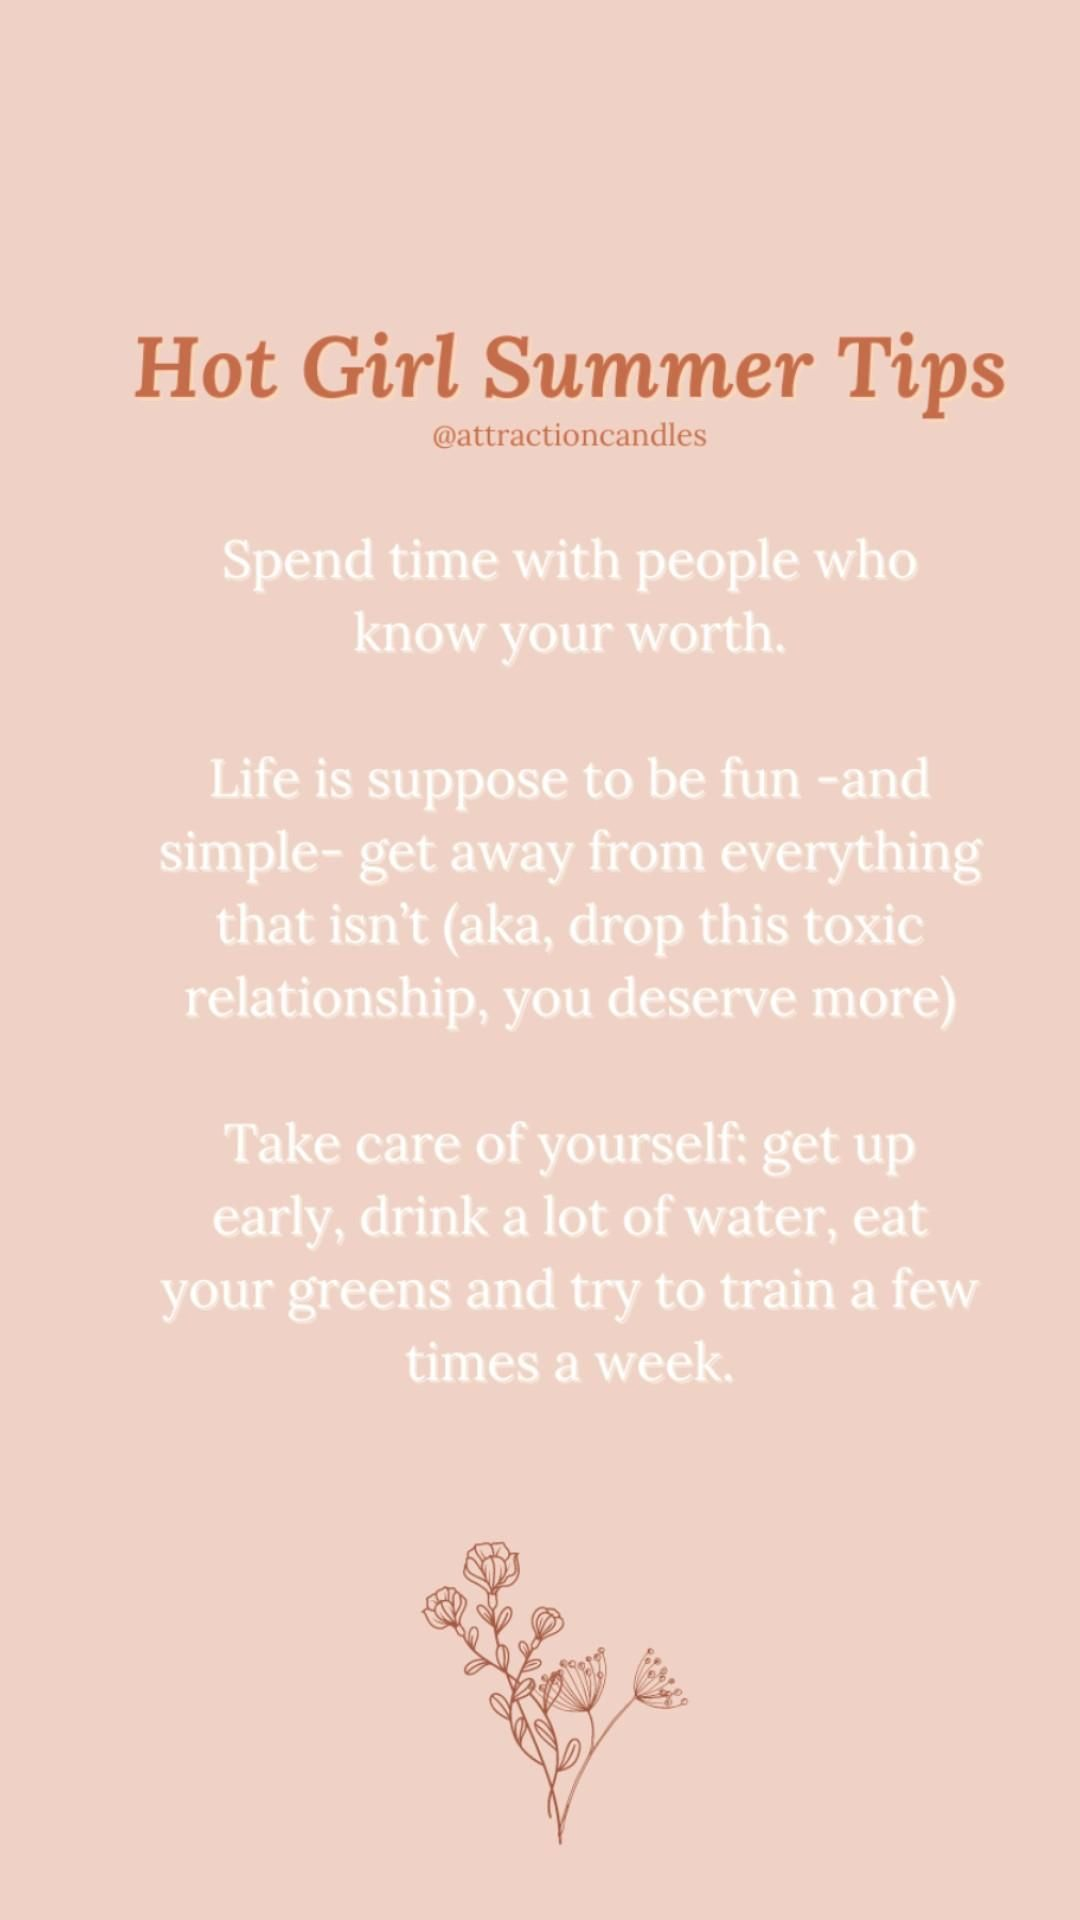 Hot Girl Summer Tips & Advice, Daily Reminder, Know Your Worth, Quotes, #selfdeveloppement, 2021